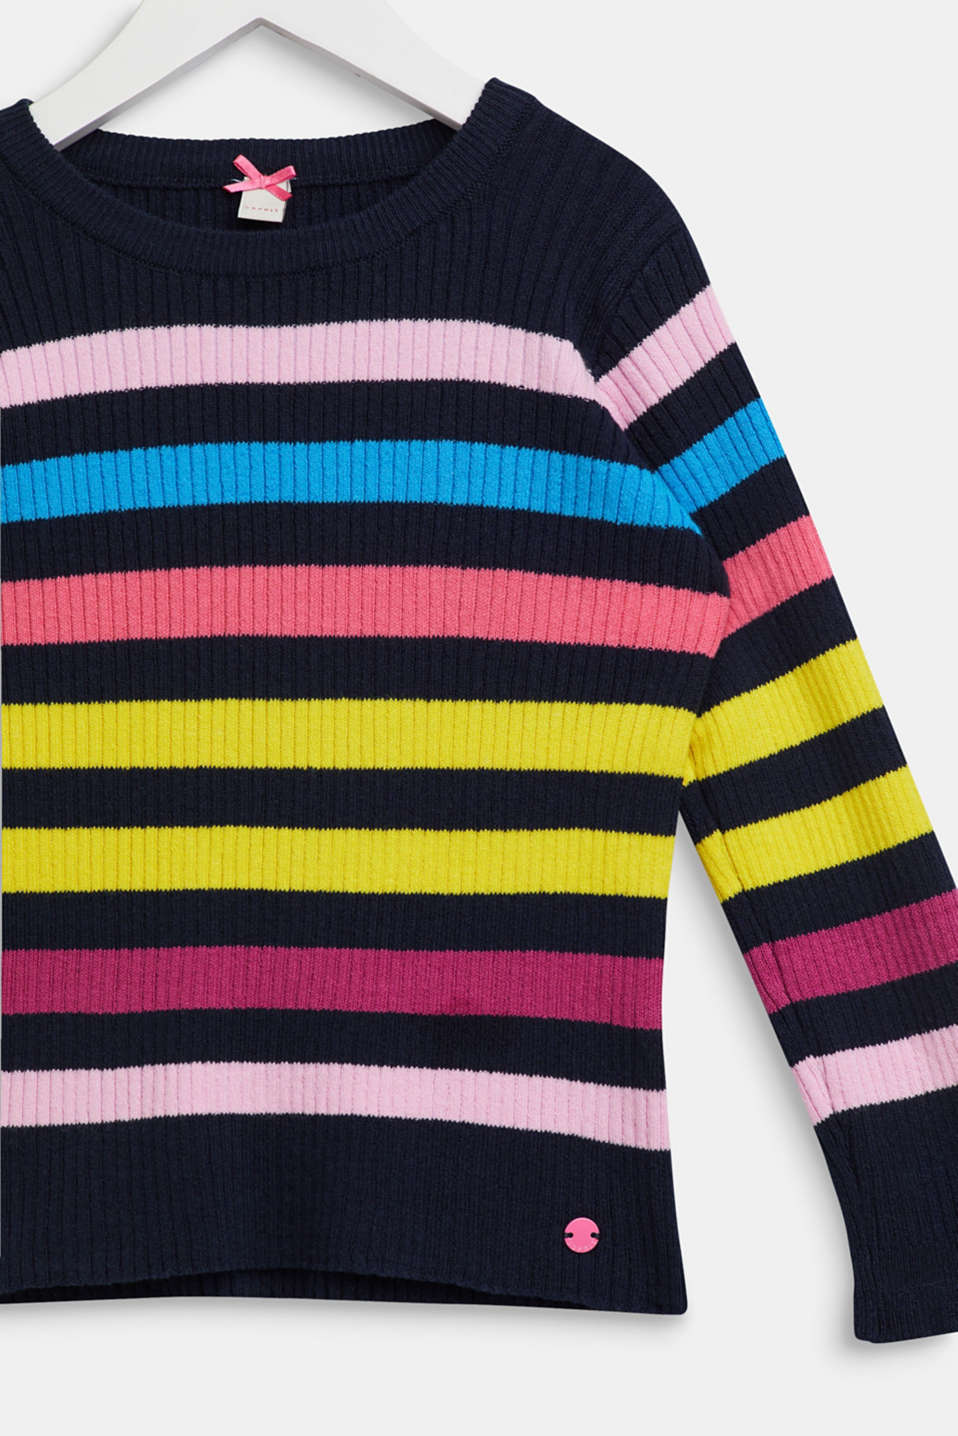 Rib knit jumper with colourful stripes, NAVY, detail image number 2